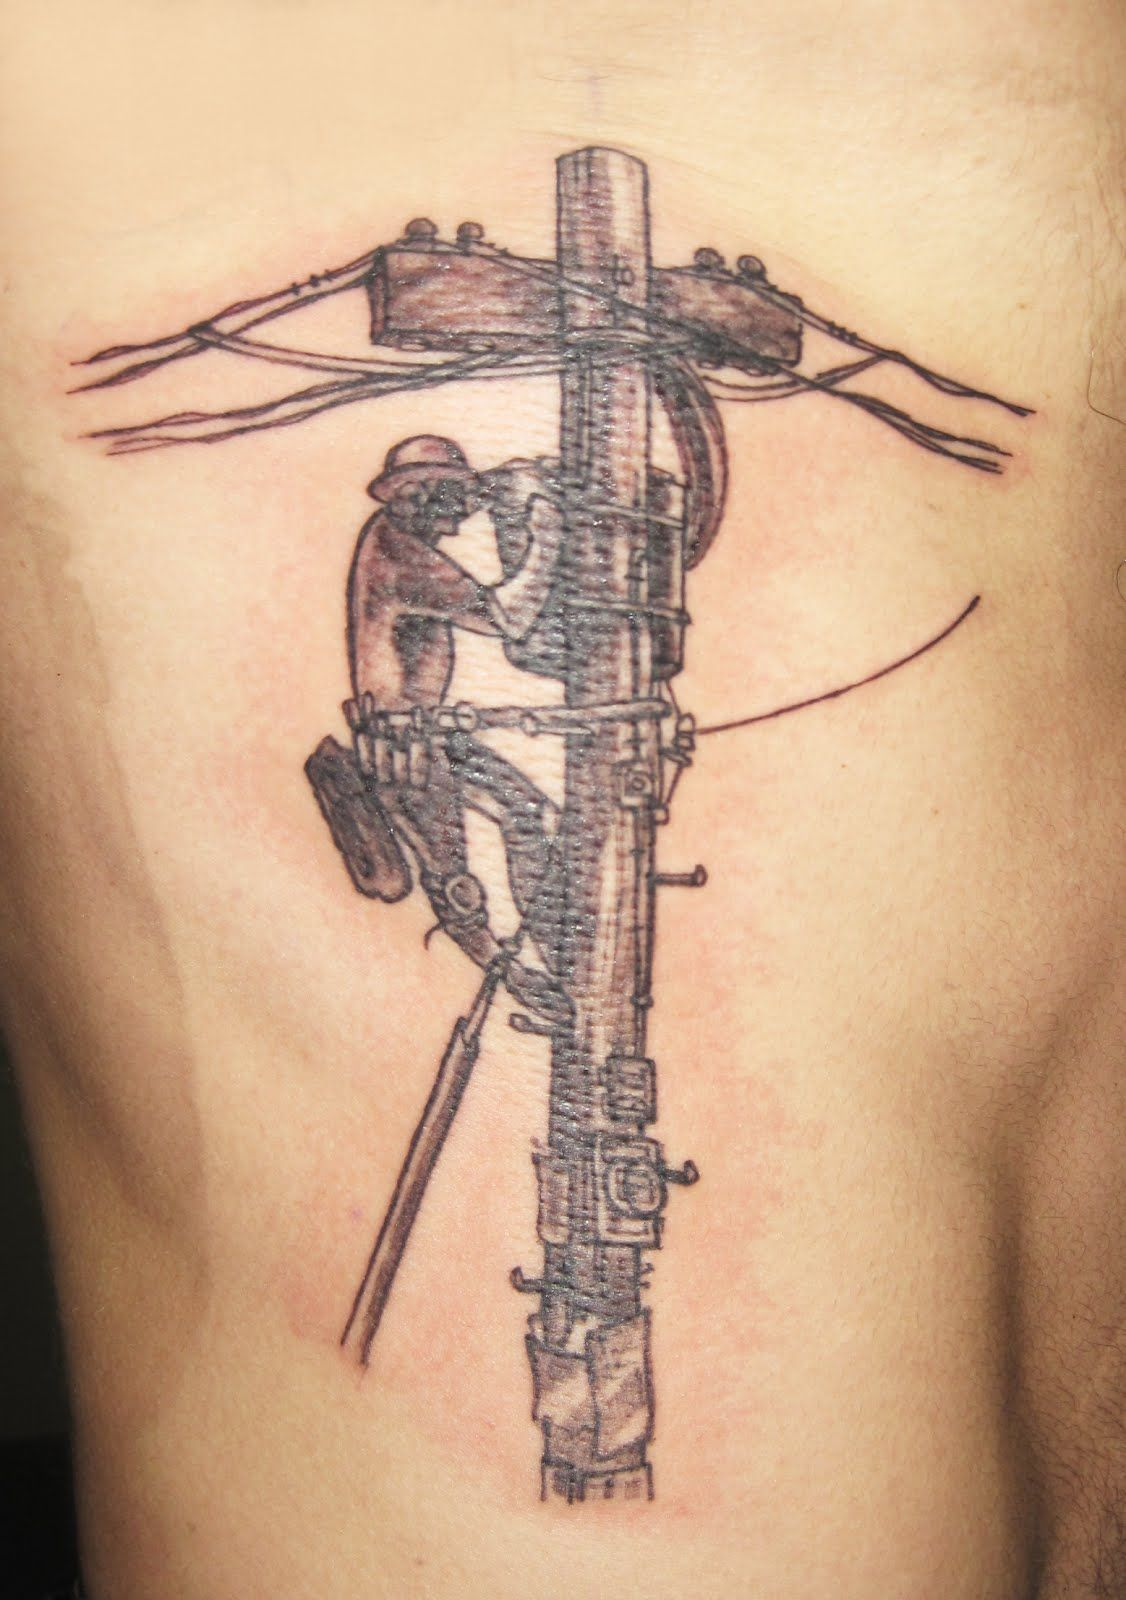 Lineman Tattoos On Arm : lineman, tattoos, Telephone, Lineman, Tattoo,, Lineman,, Tattoos